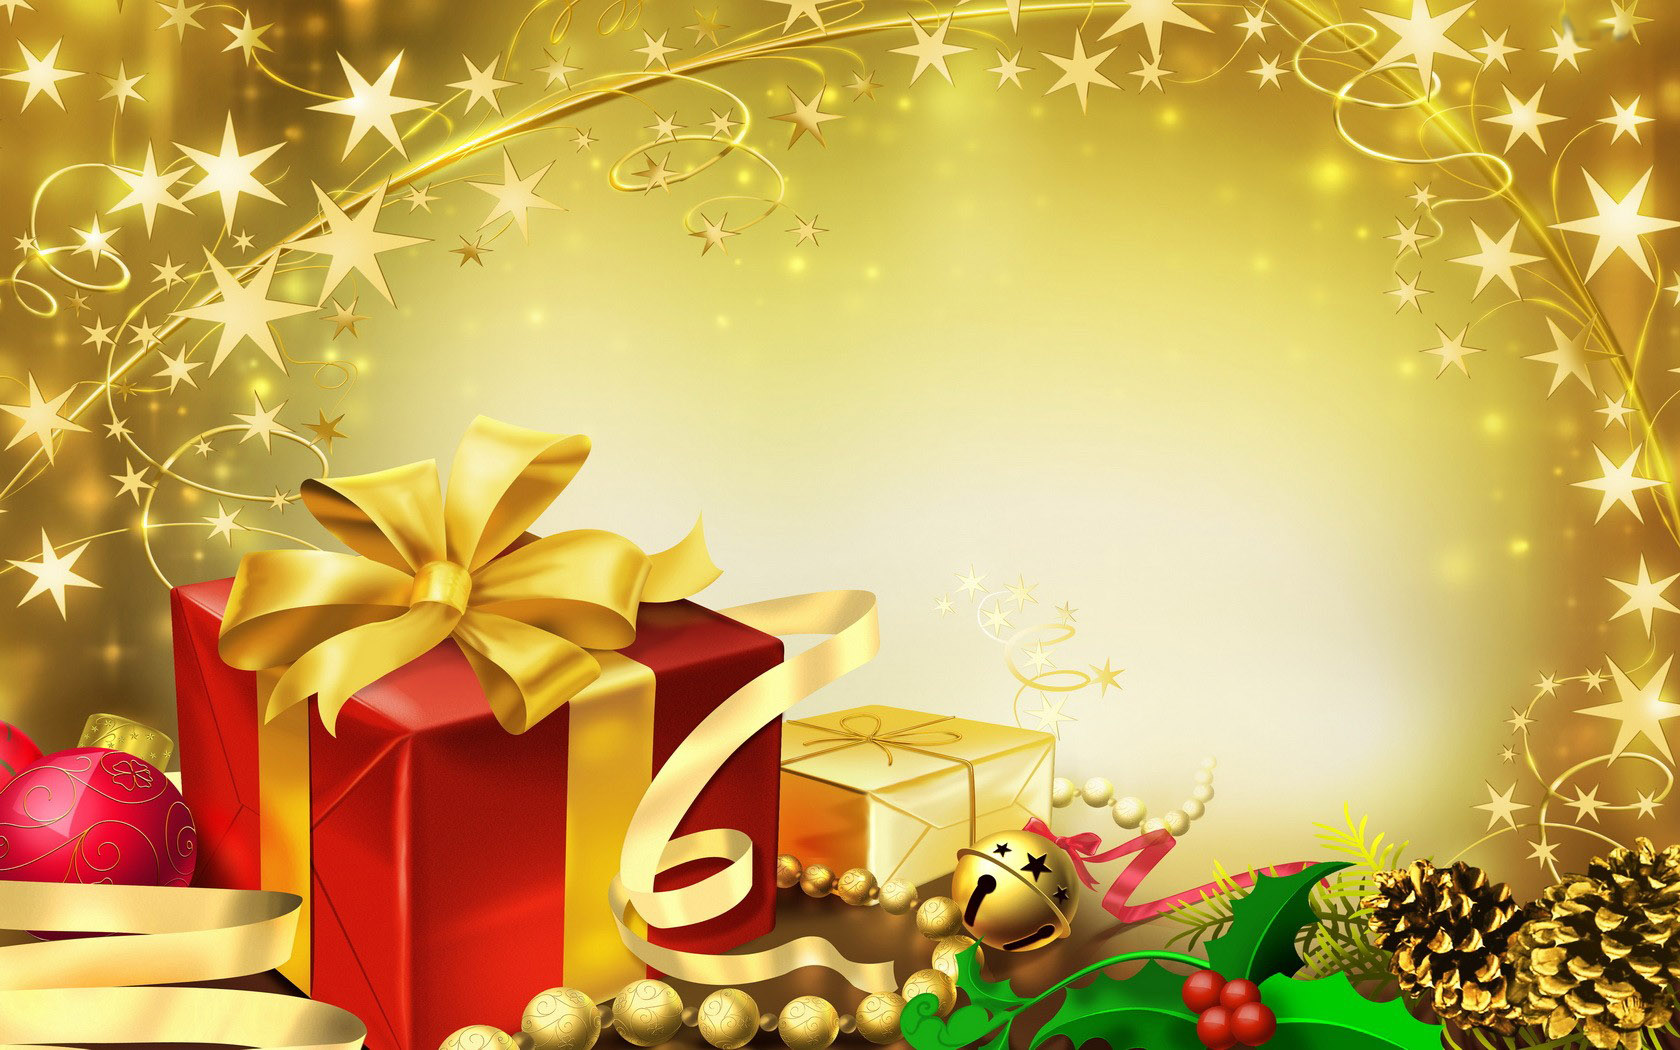 animated-christmas-gift-image-0032